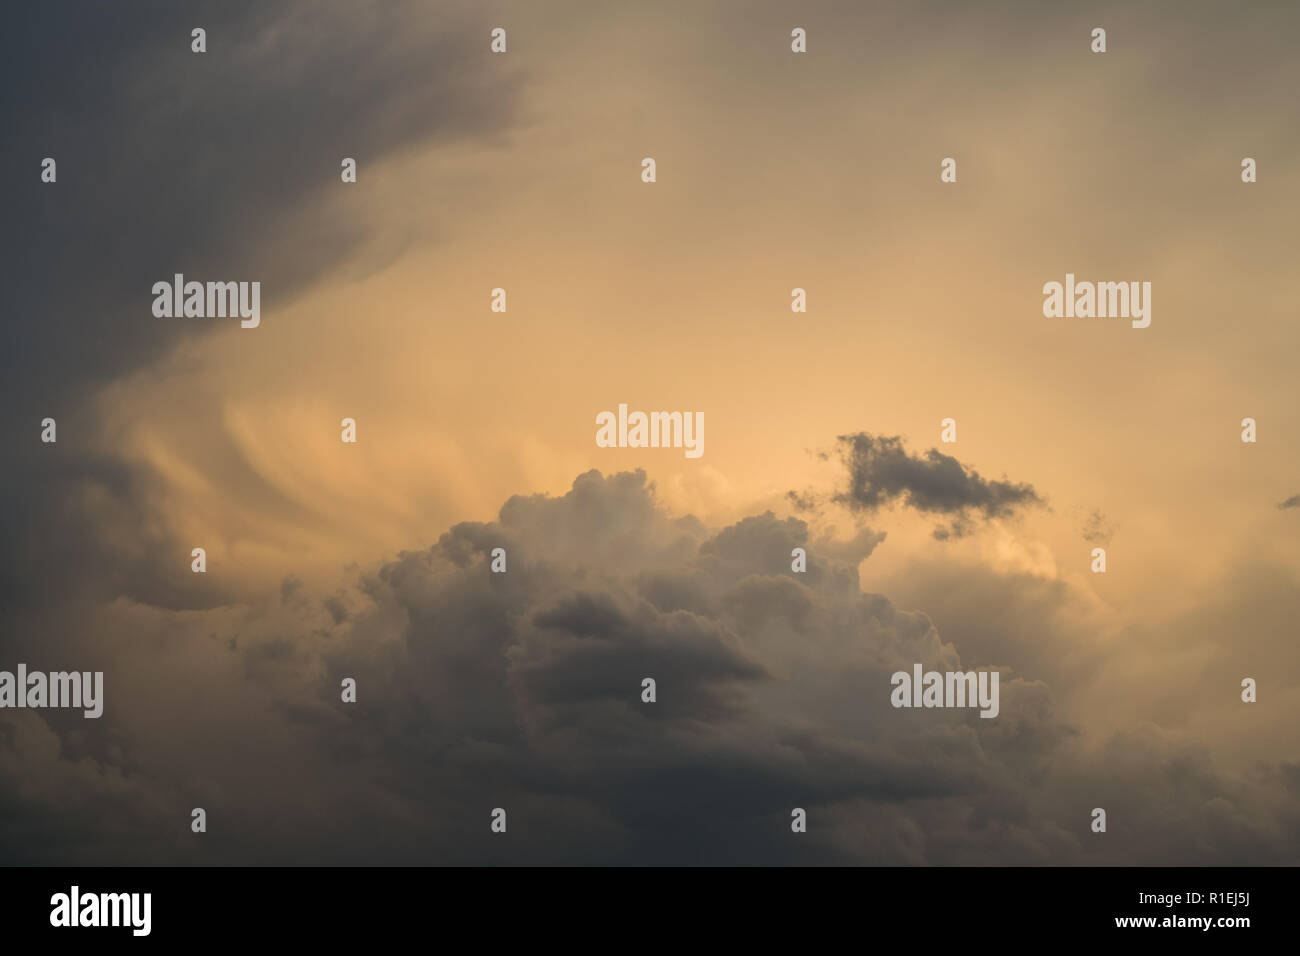 Dreamy Clouds to Daydream - Stock Image